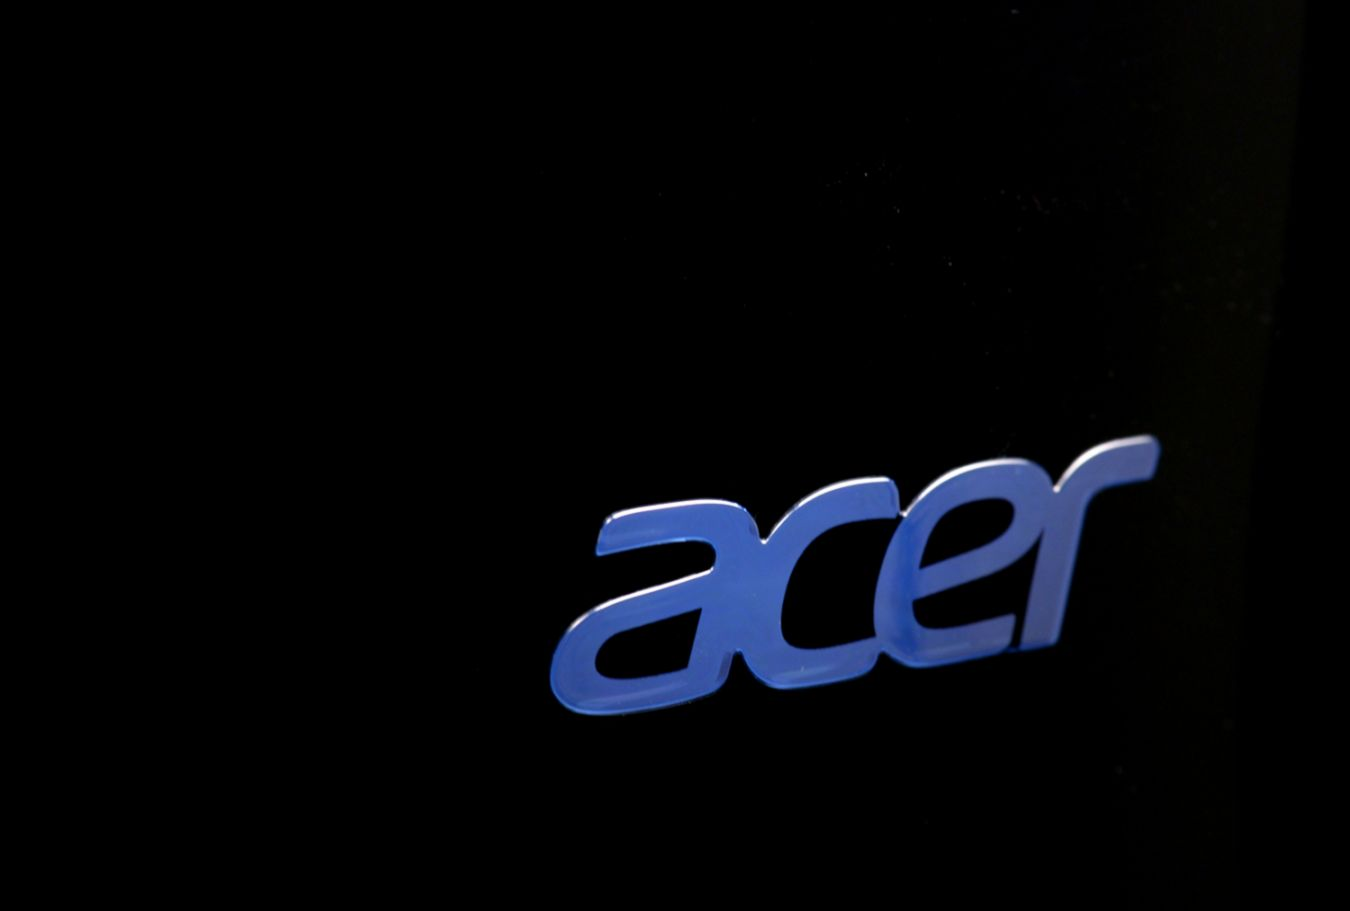 acer logo wallpaper widescreen high definitions wallpapers